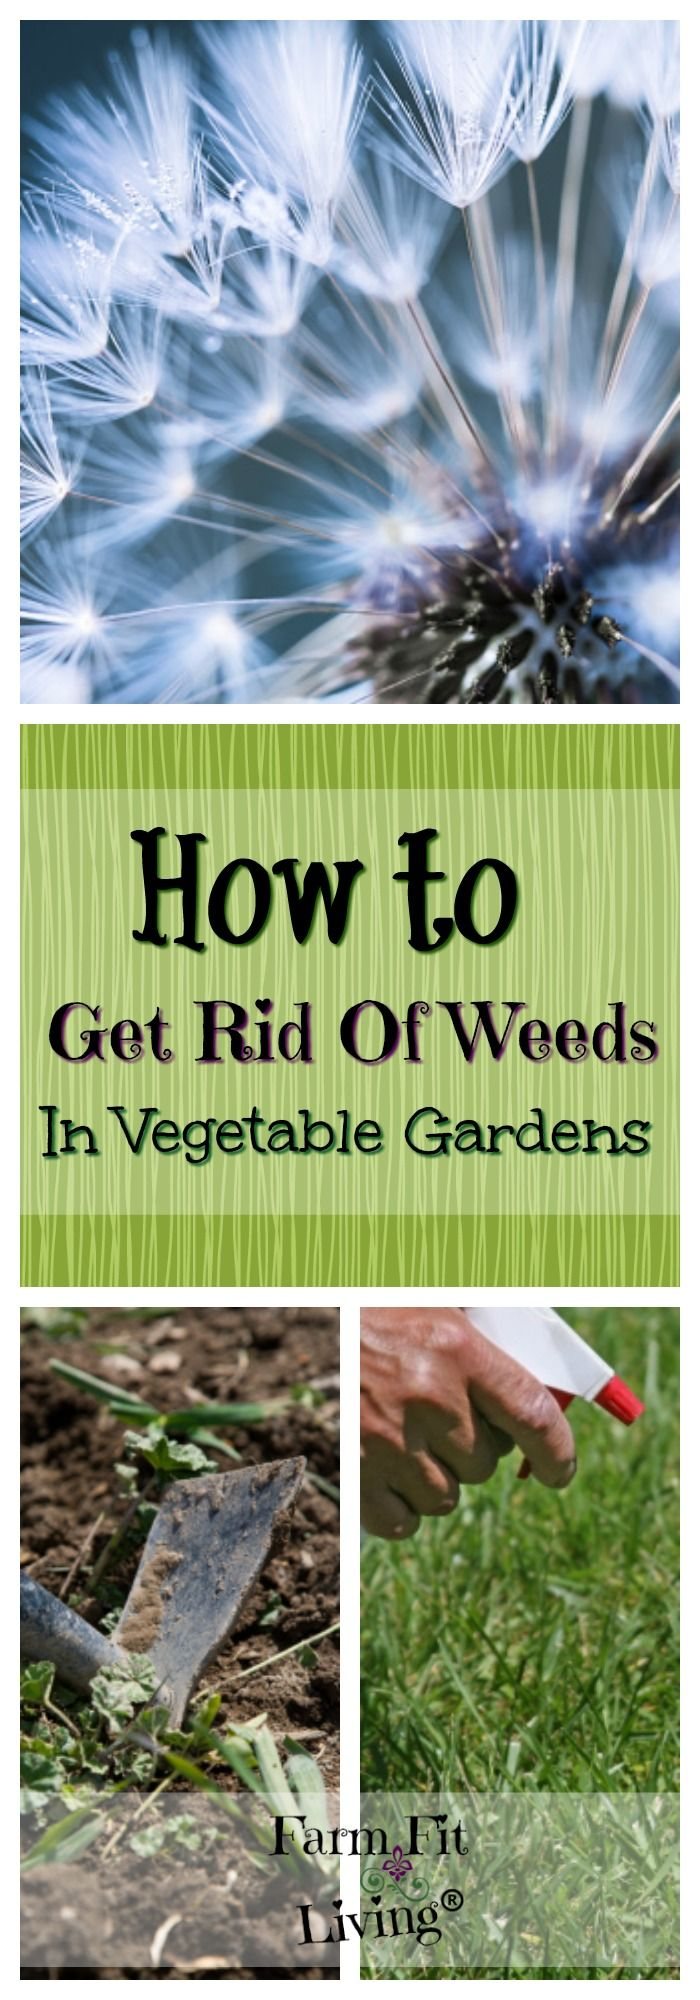 17 best images about sustainable economy homestead on pinterest gardens grow your own and - Get rid weeds using vinegar ...